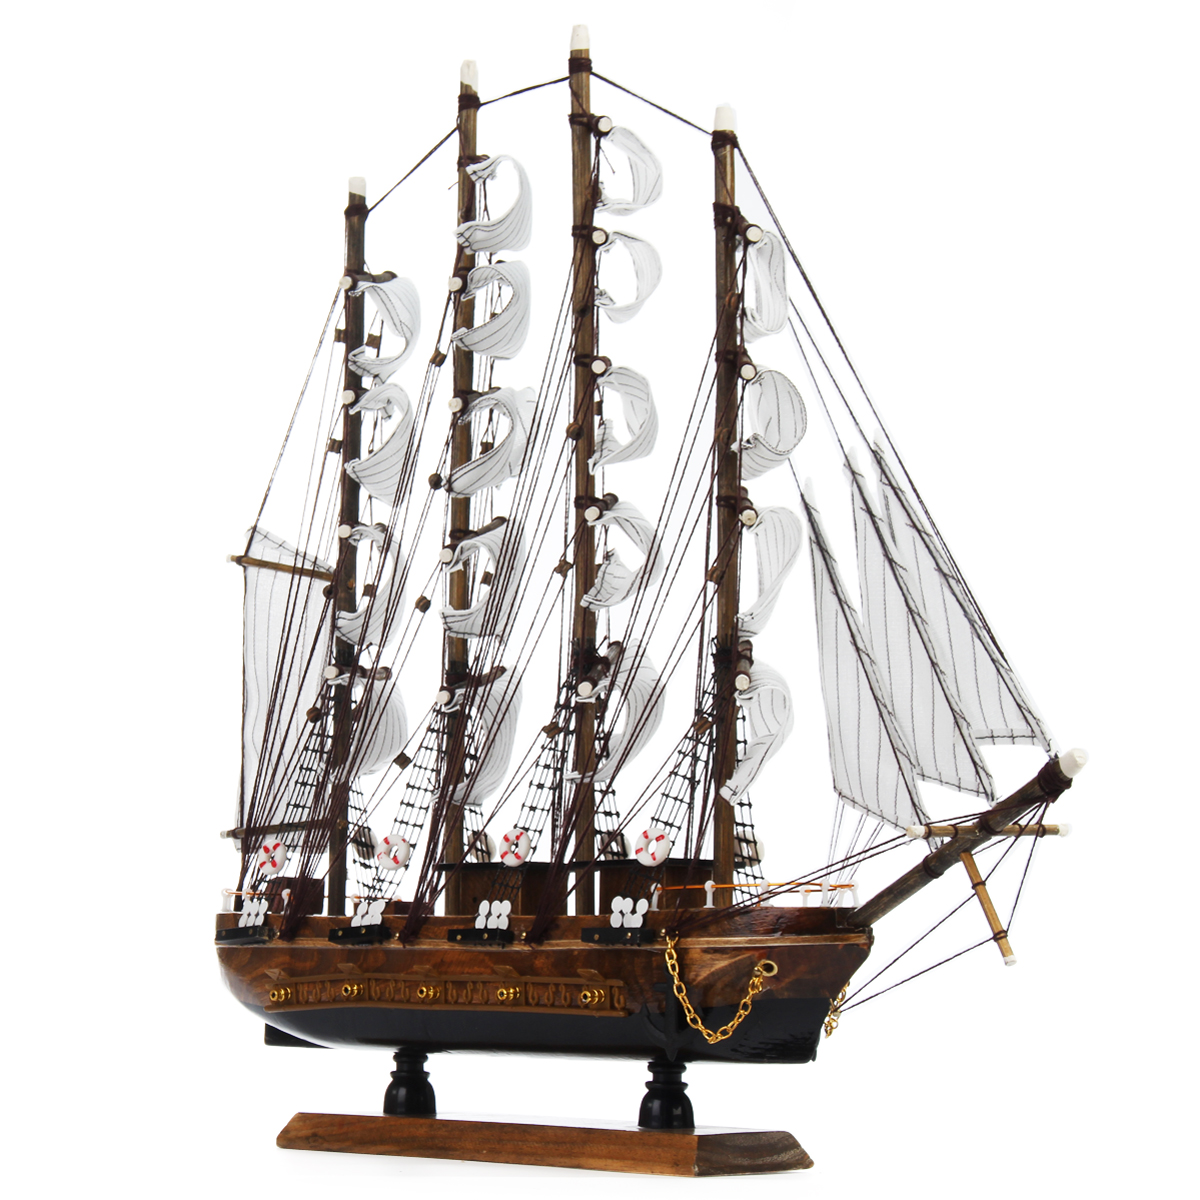 New 50cm Wood Crafts Desk Ornaments Office Shop Club Decoration Kits Classical 50cm Wooden Sailing Boat Ship Model Home DecorNew 50cm Wood Crafts Desk Ornaments Office Shop Club Decoration Kits Classical 50cm Wooden Sailing Boat Ship Model Home Decor